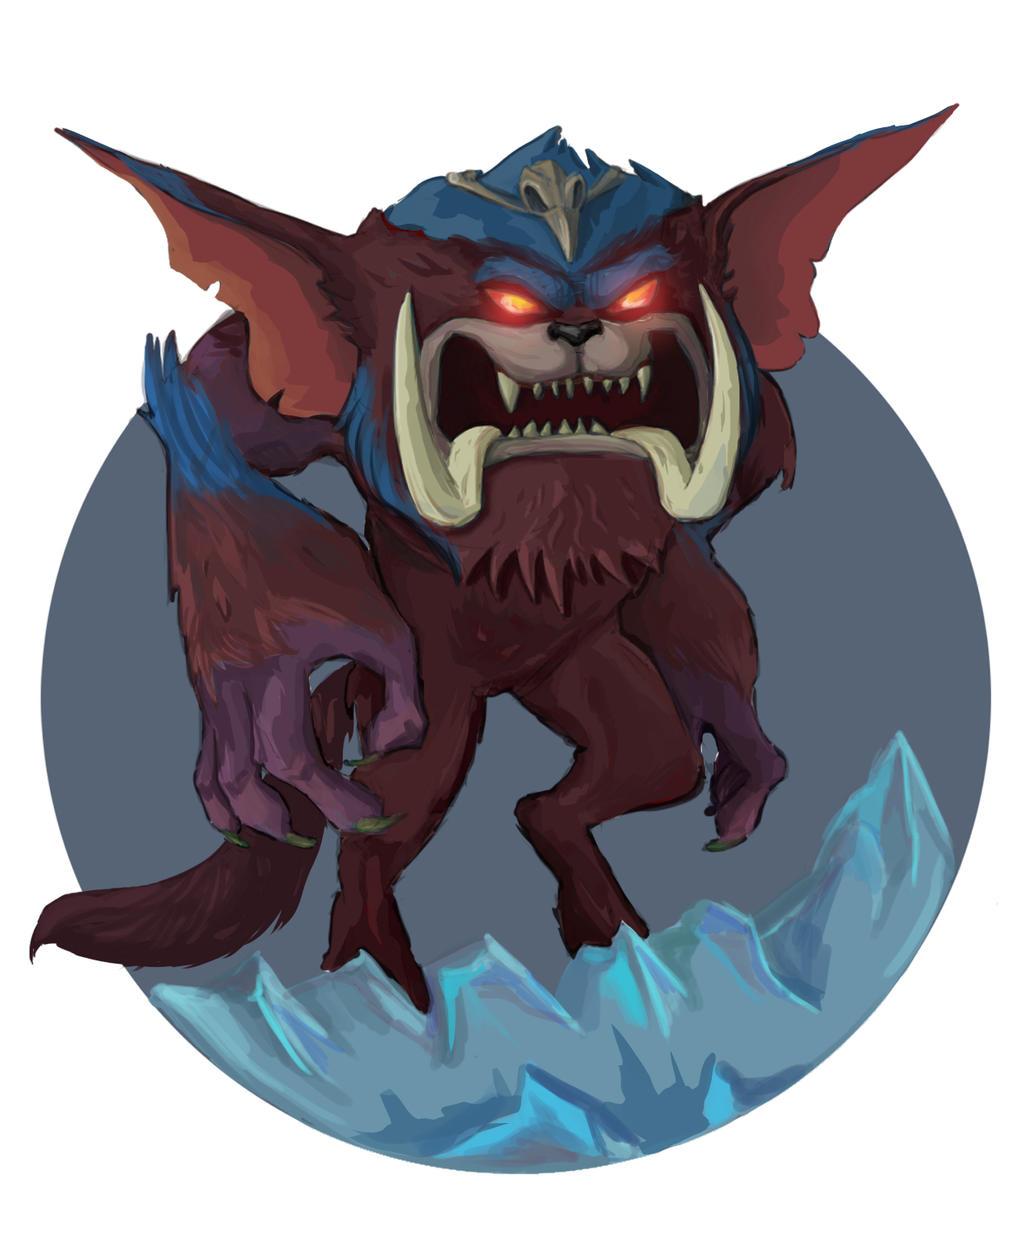 Gnar new champion league of legends by Celopius on DeviantArt